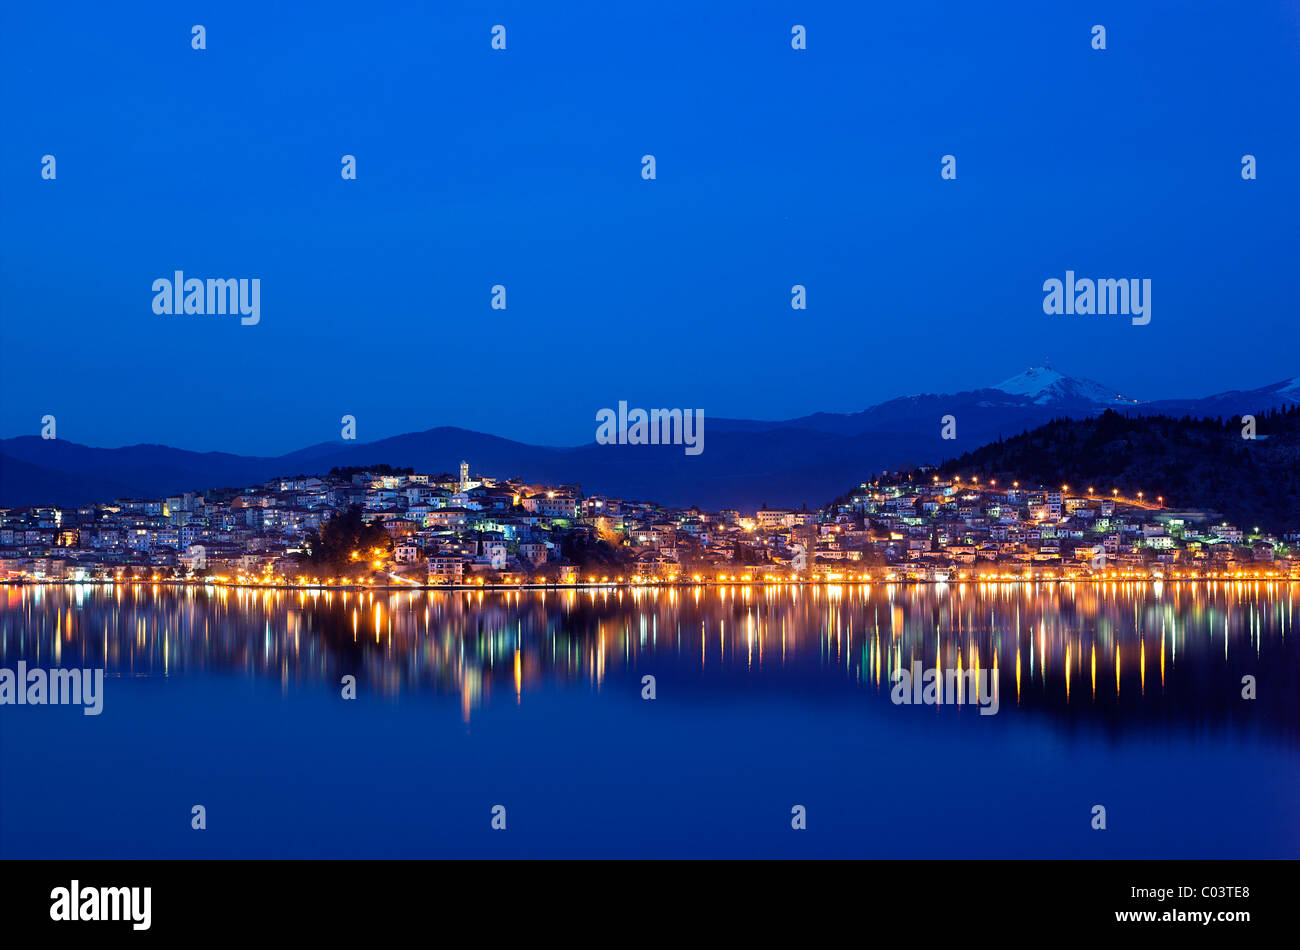 Kastoria town in the 'blue' hour, reflected in the beautiful 'Orestias' or 'Orestiada' lake. - Stock Image